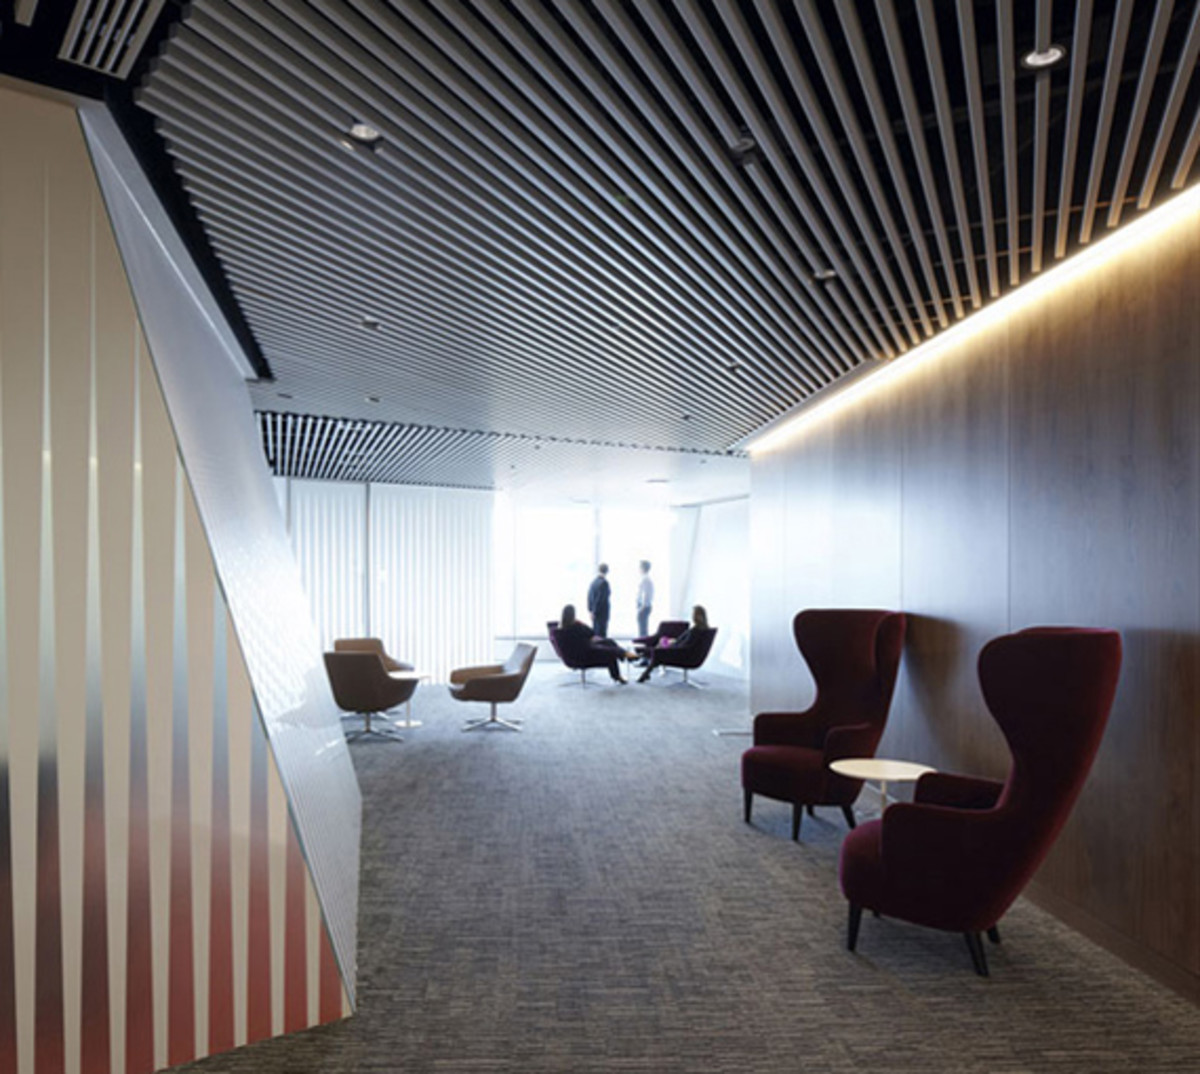 macquarie-ropemaker-place-hq-clive-wilkinson-architects-05